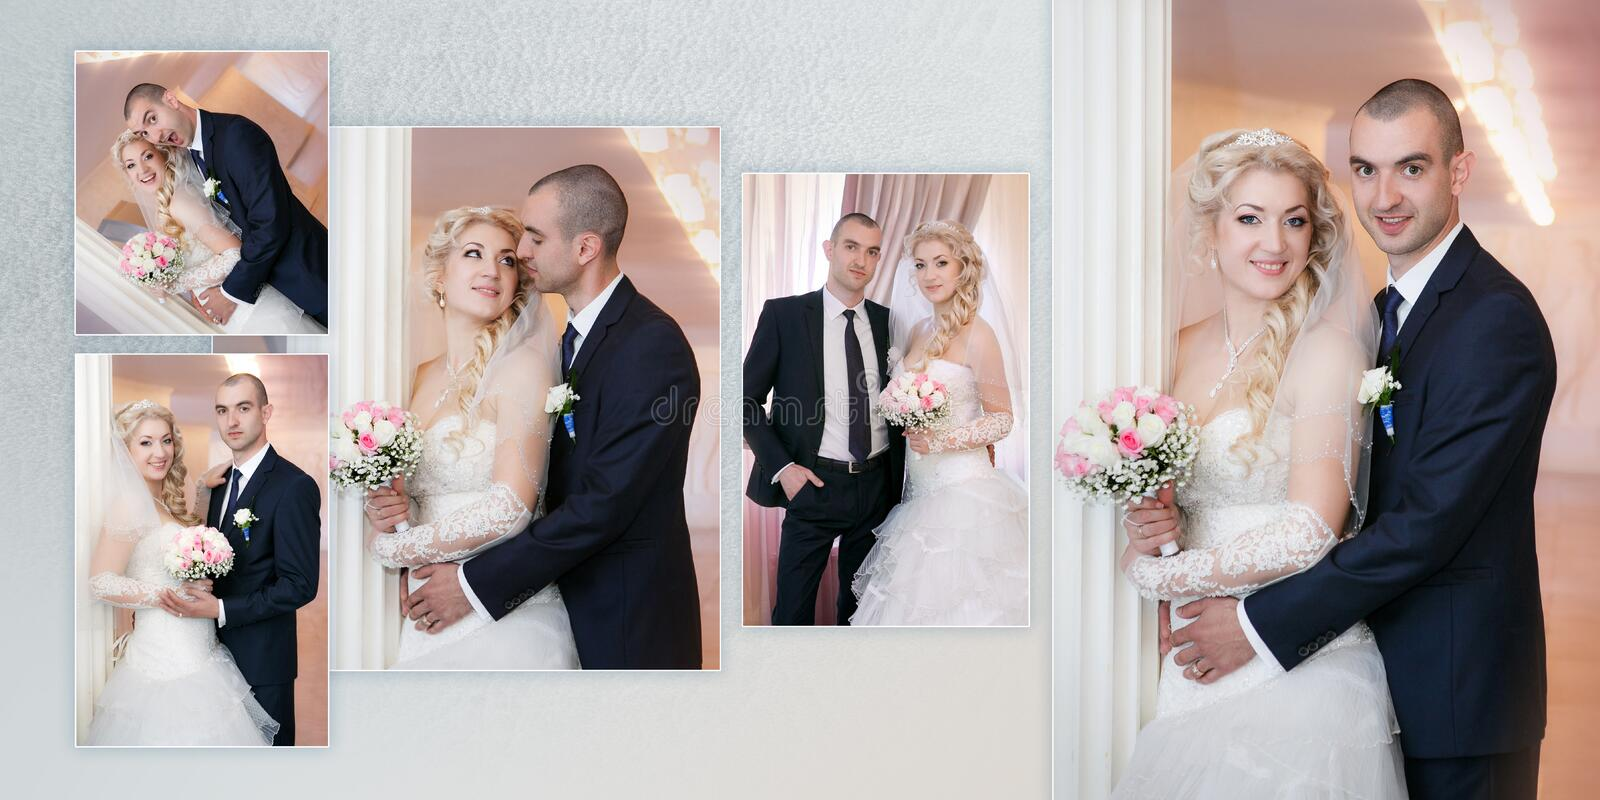 Download Groom And The Bride With A Wedding Bouquet Stand Near A White Column Stock Photo - Image: 42318633